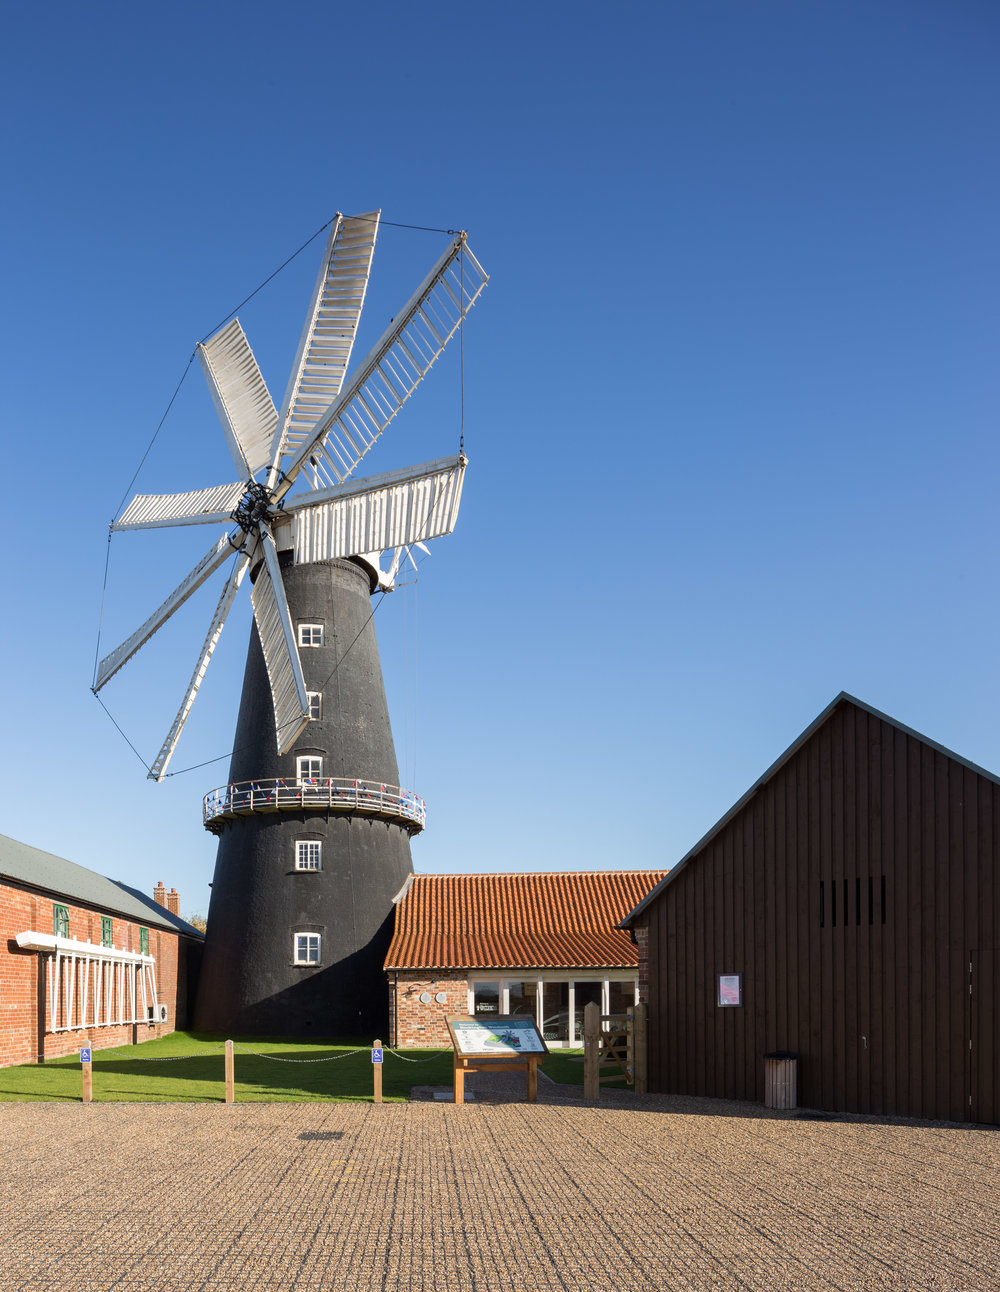 CGA_Heckington Windmill_IMG_8539-HDR-Pano.jpg